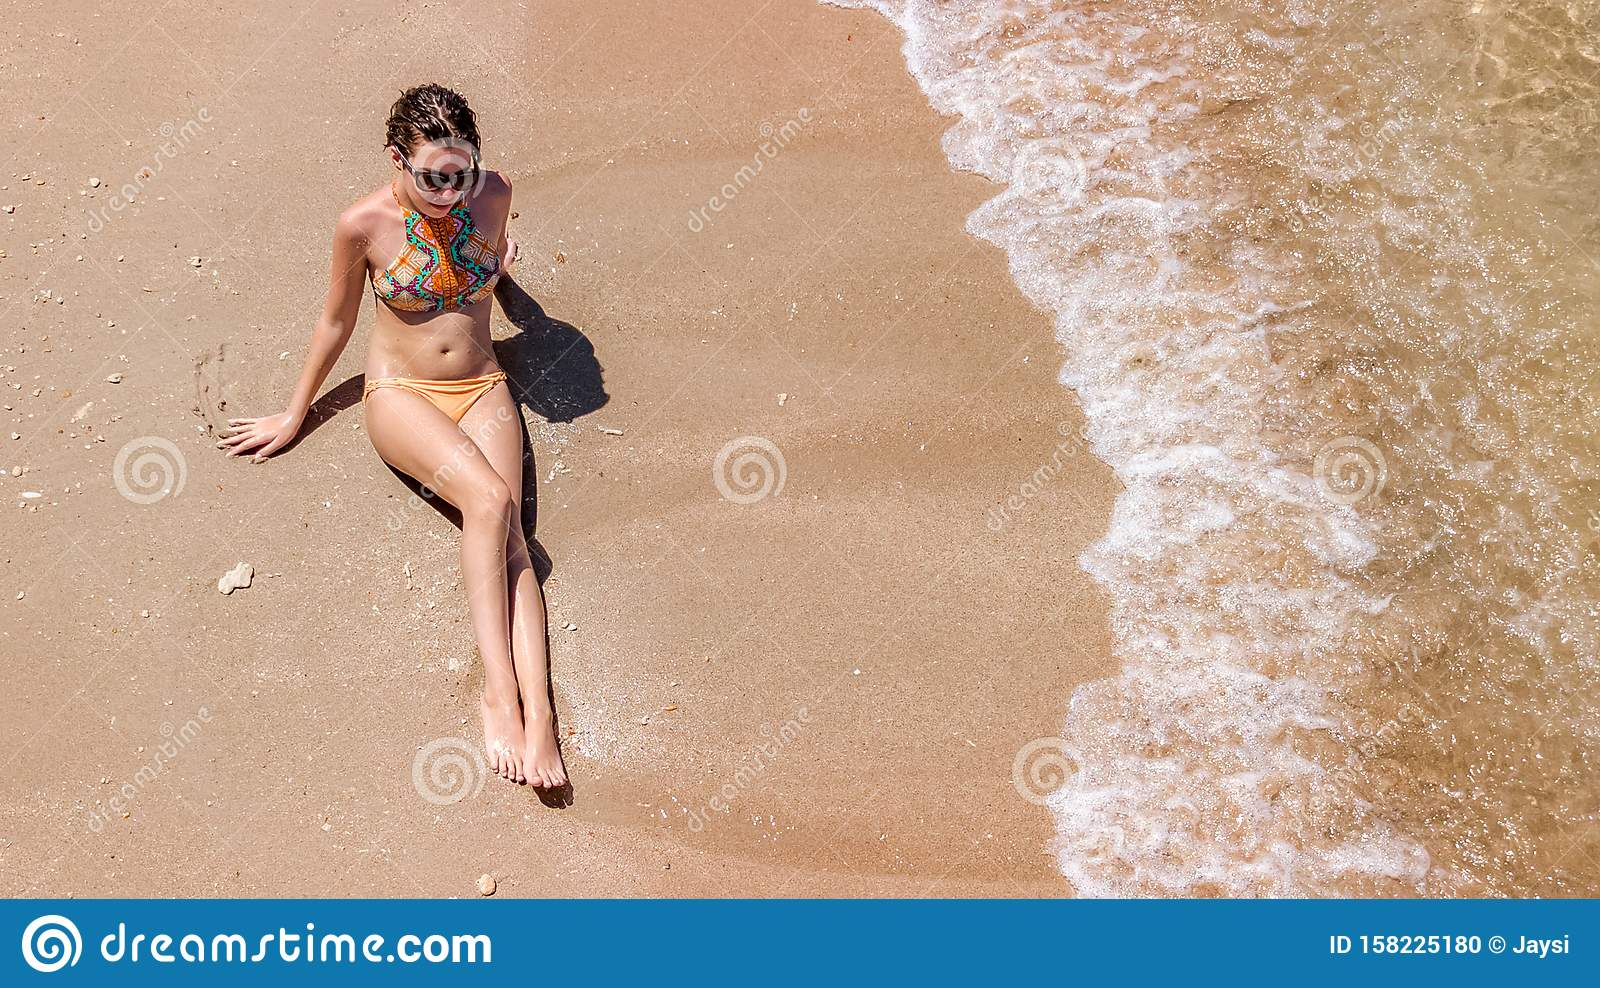 Aerial top view of young woman in bikini relaxing on sand tropical beach by sea and waves from above, girl on tropical island